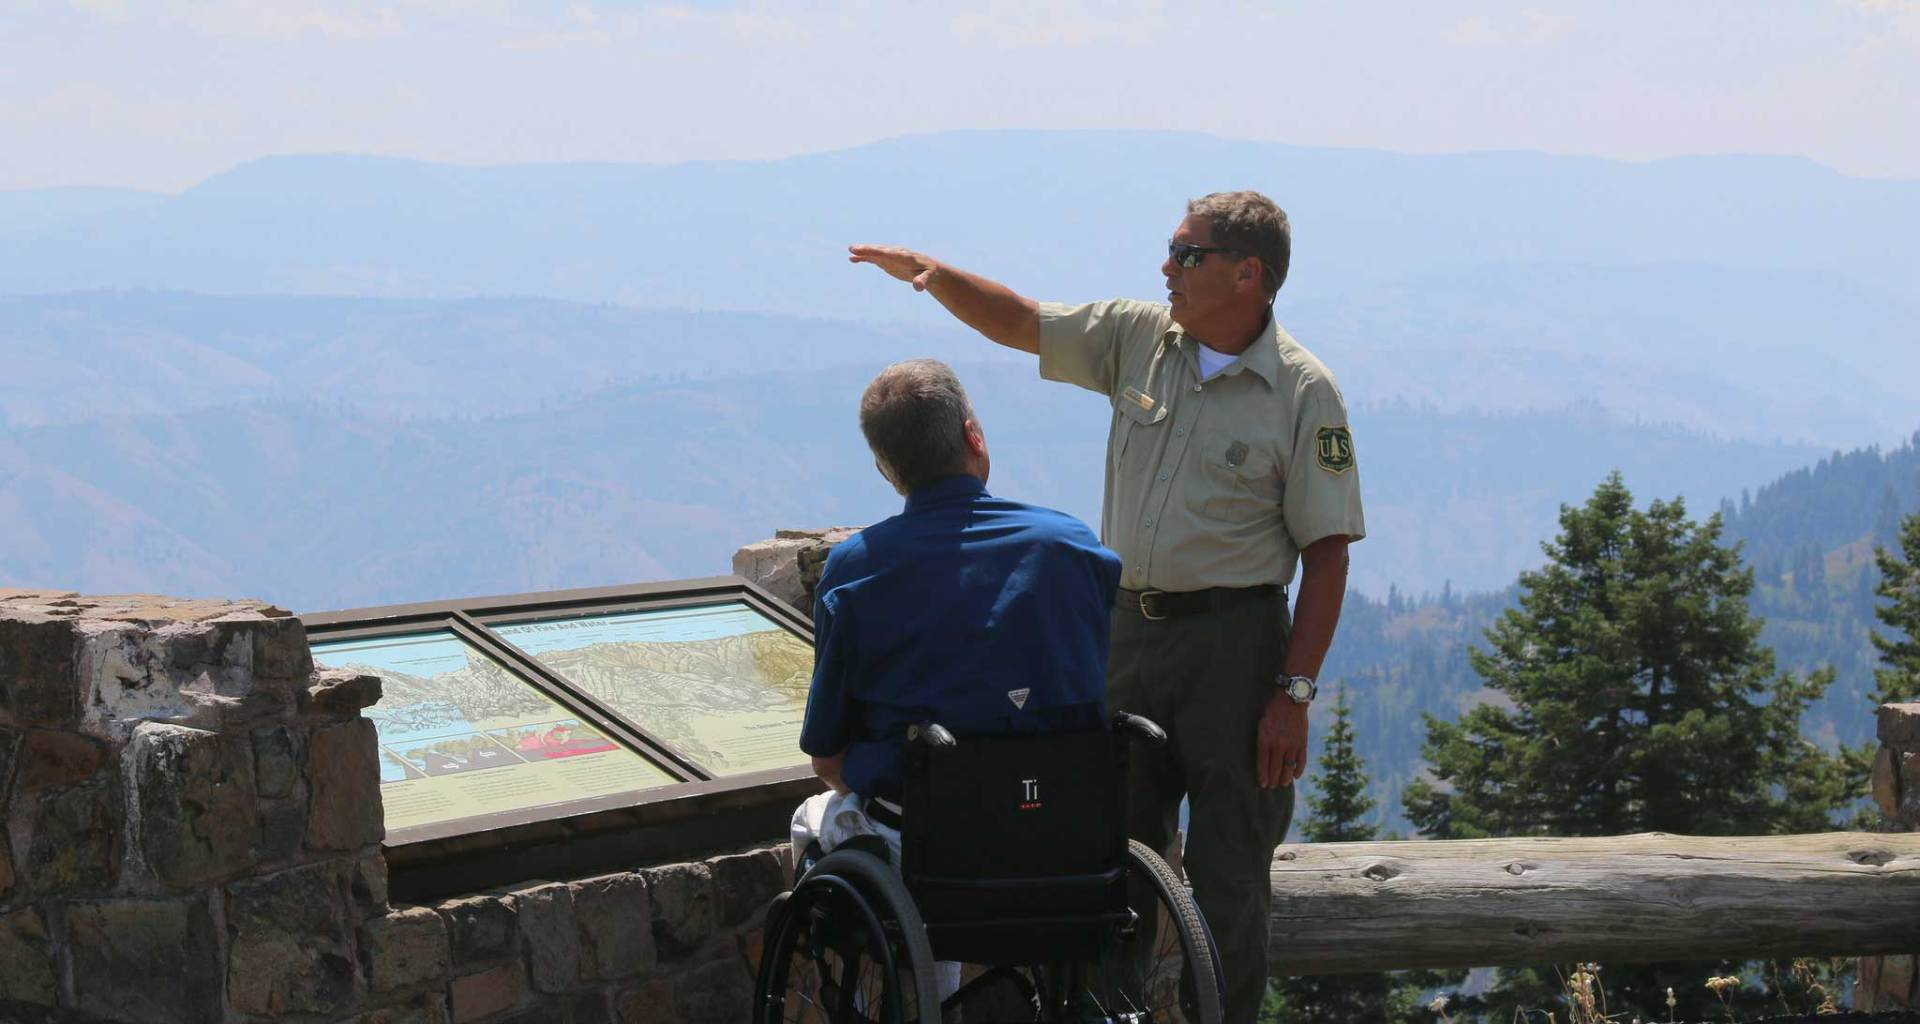 Park ranger speaking with a wheelchair user at an overlook inside a National Park.